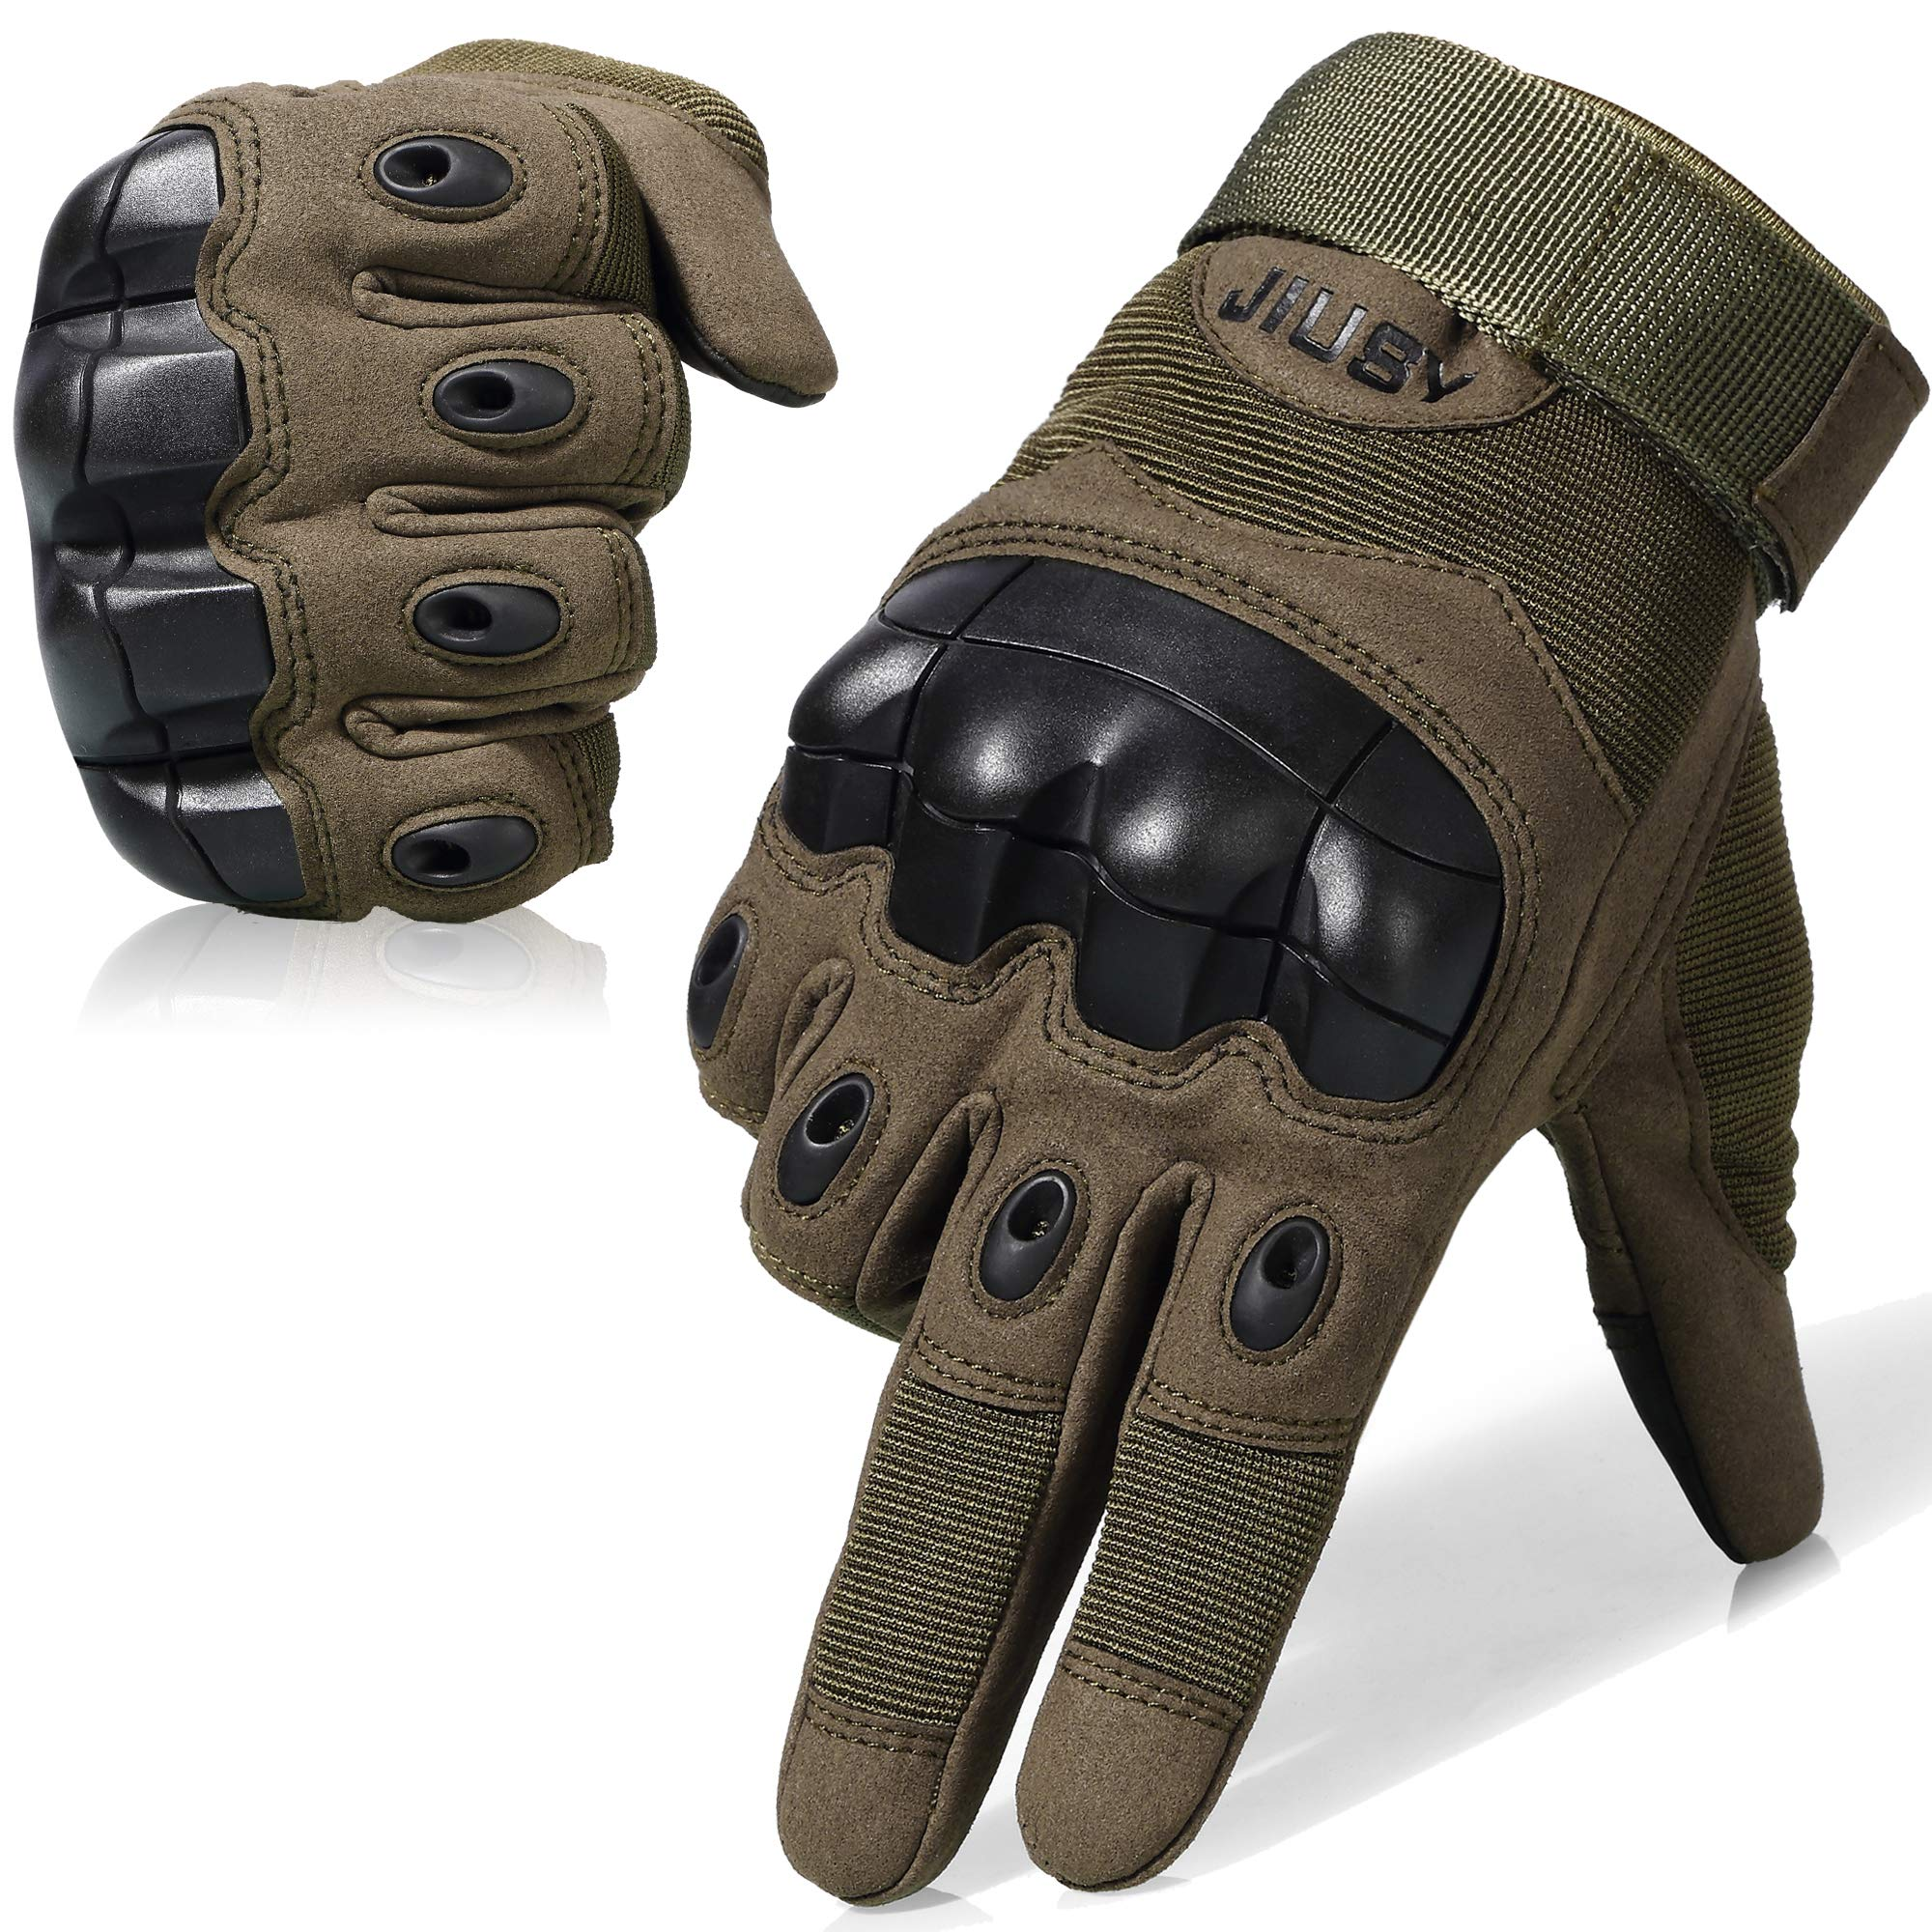 WTACTFUL Touch Screen Military Rubber Hard Knuckle Tactical Gloves Full Finger Airsoft Paintball Outdoor Army Gear Sports Cycling Motorcycle Riding Shooting Hunting Size Small Green